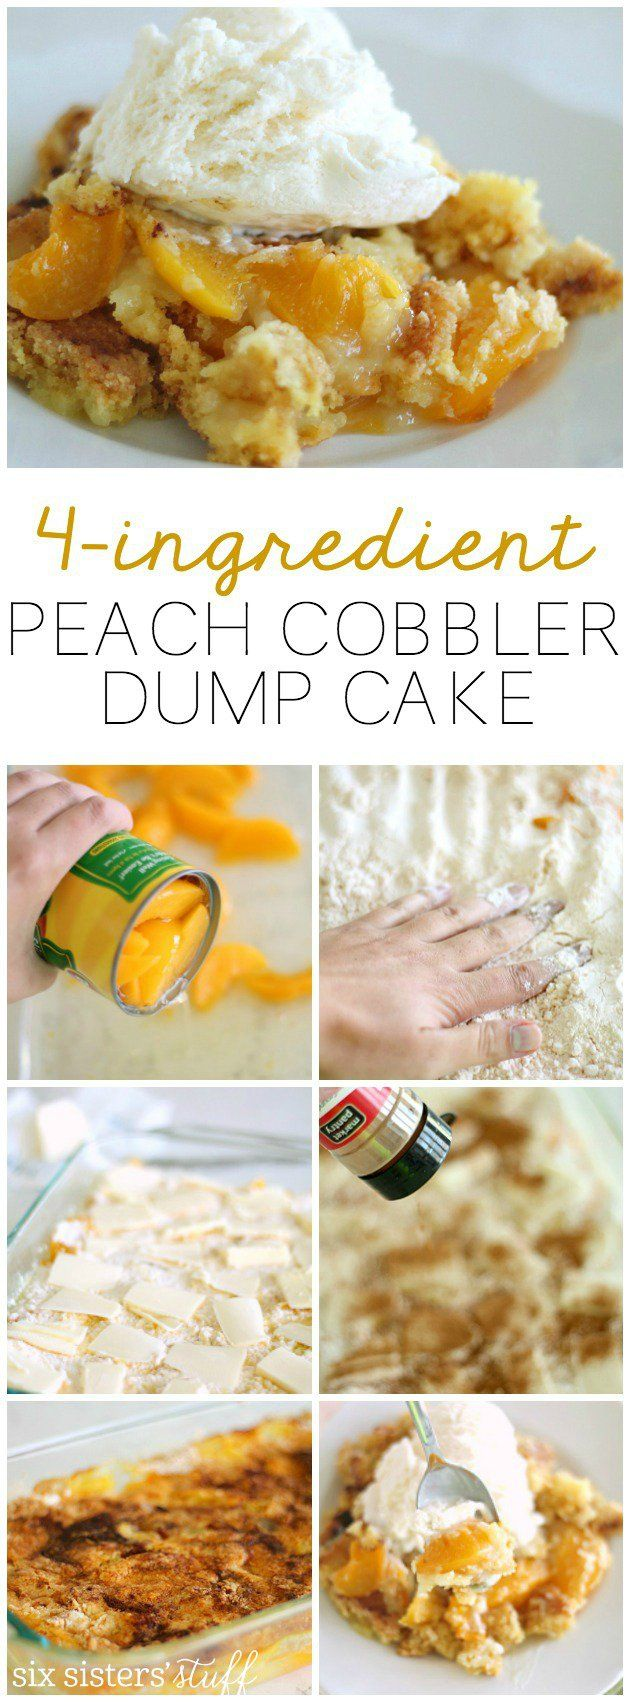 Delicious peach cobbler dump cake that only uses 4 ingredients! | SixSistersStuff.com #cake_recipes_fruit